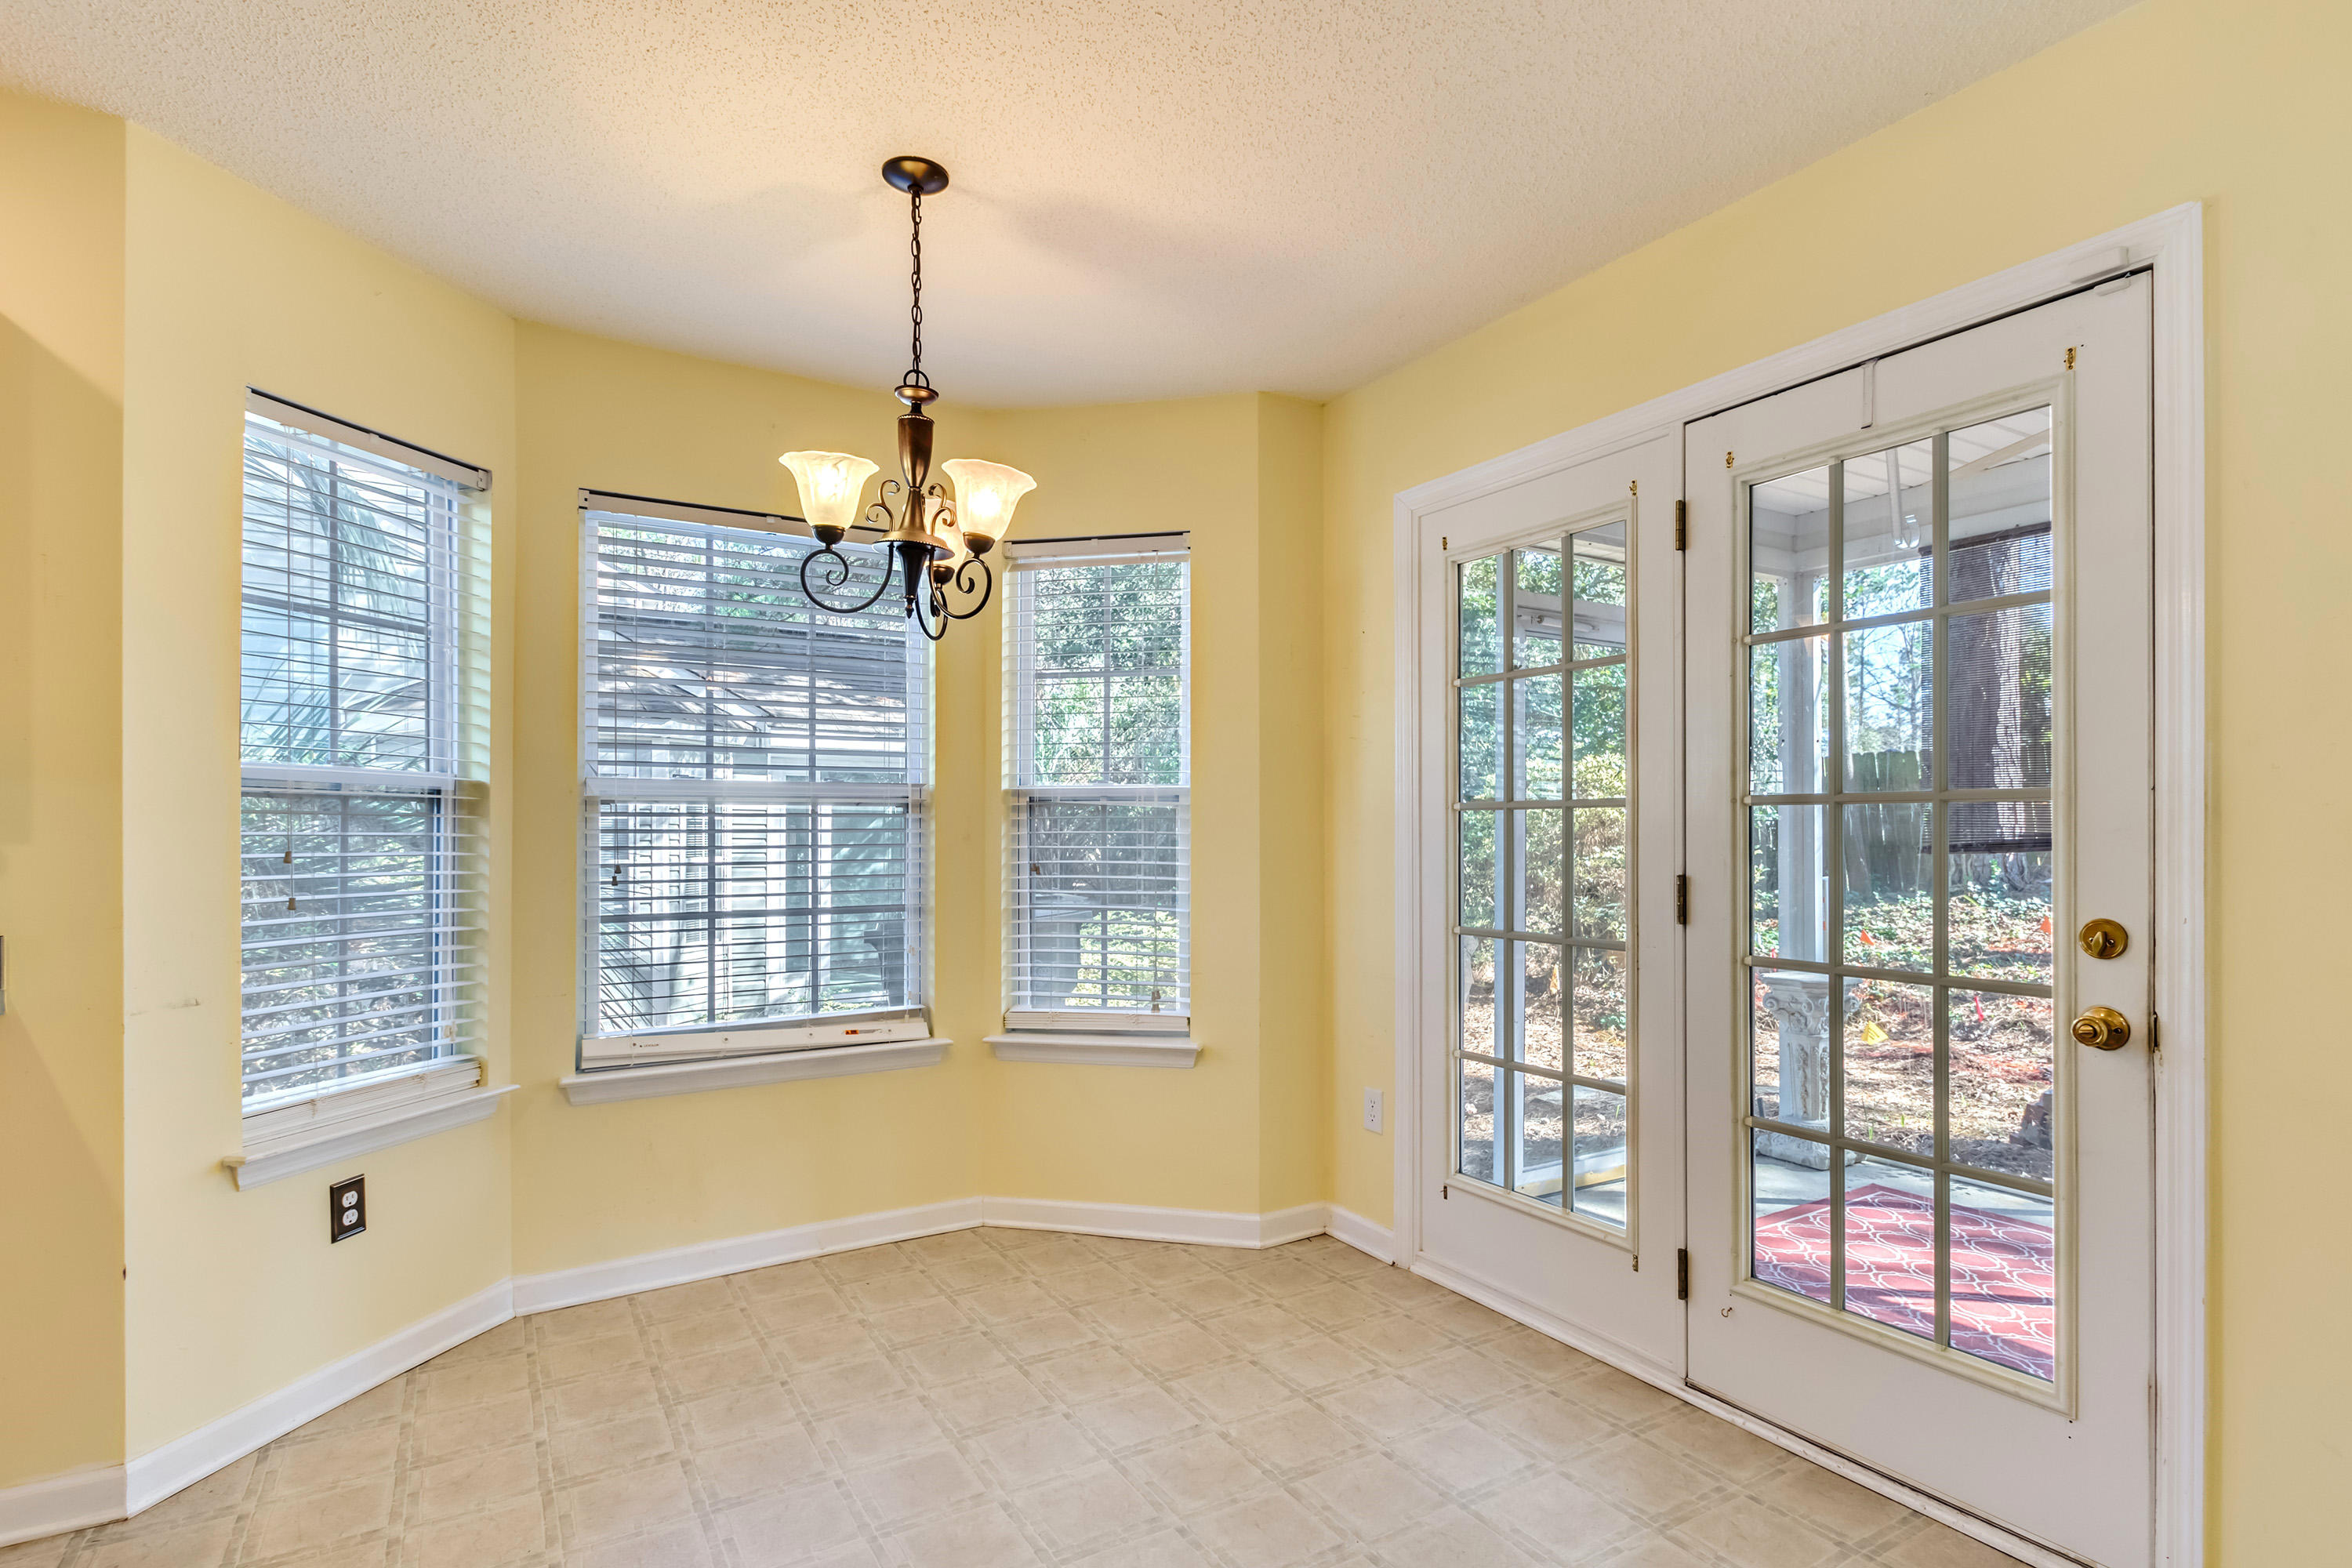 Persimmon Hill Townhouses Homes For Sale - 111 Taylor, Goose Creek, SC - 11